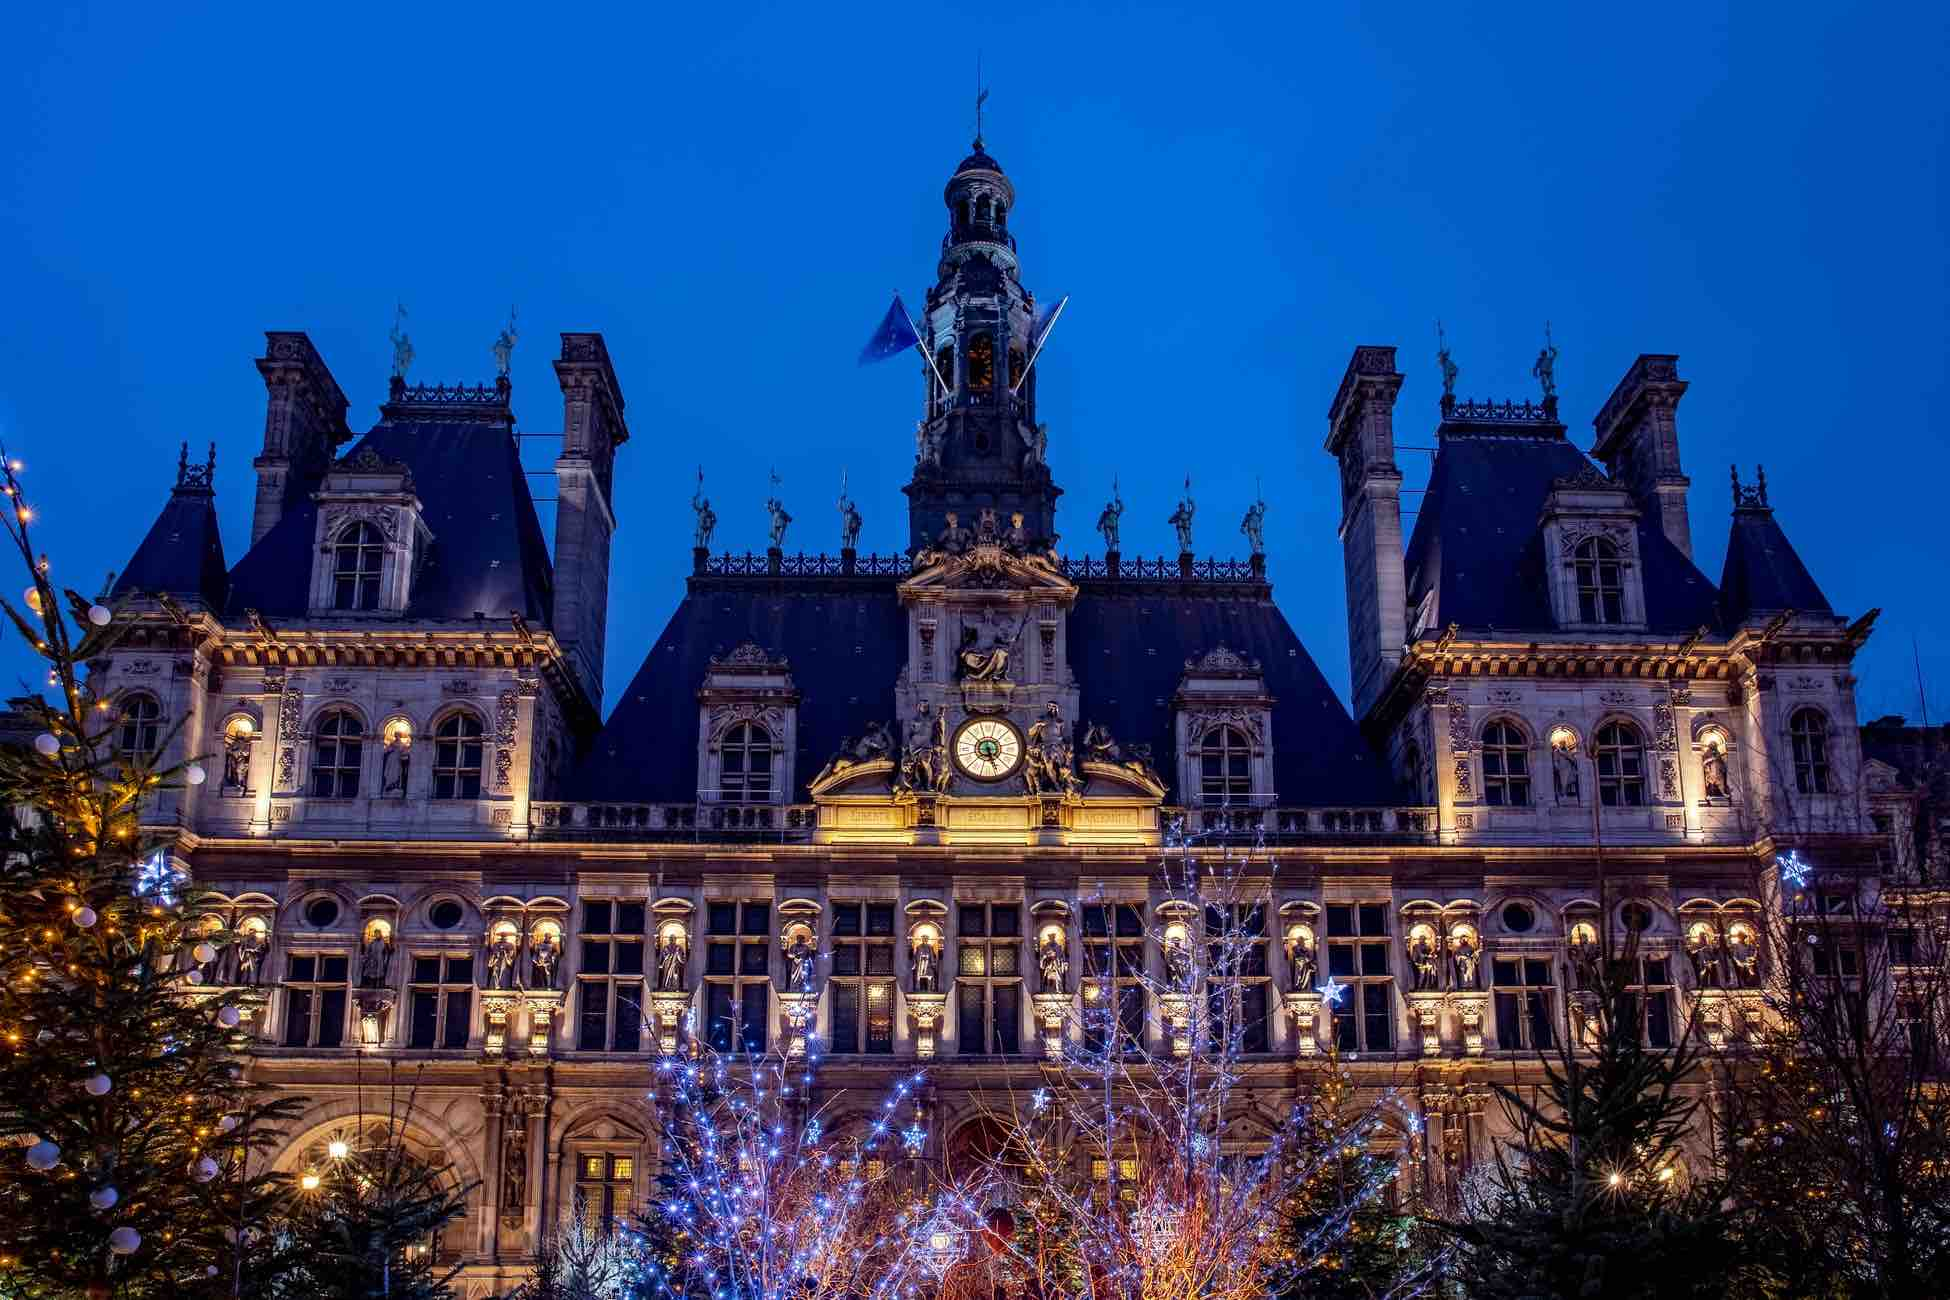 Hotel de Ville at night photo by Andrei Ianovskii